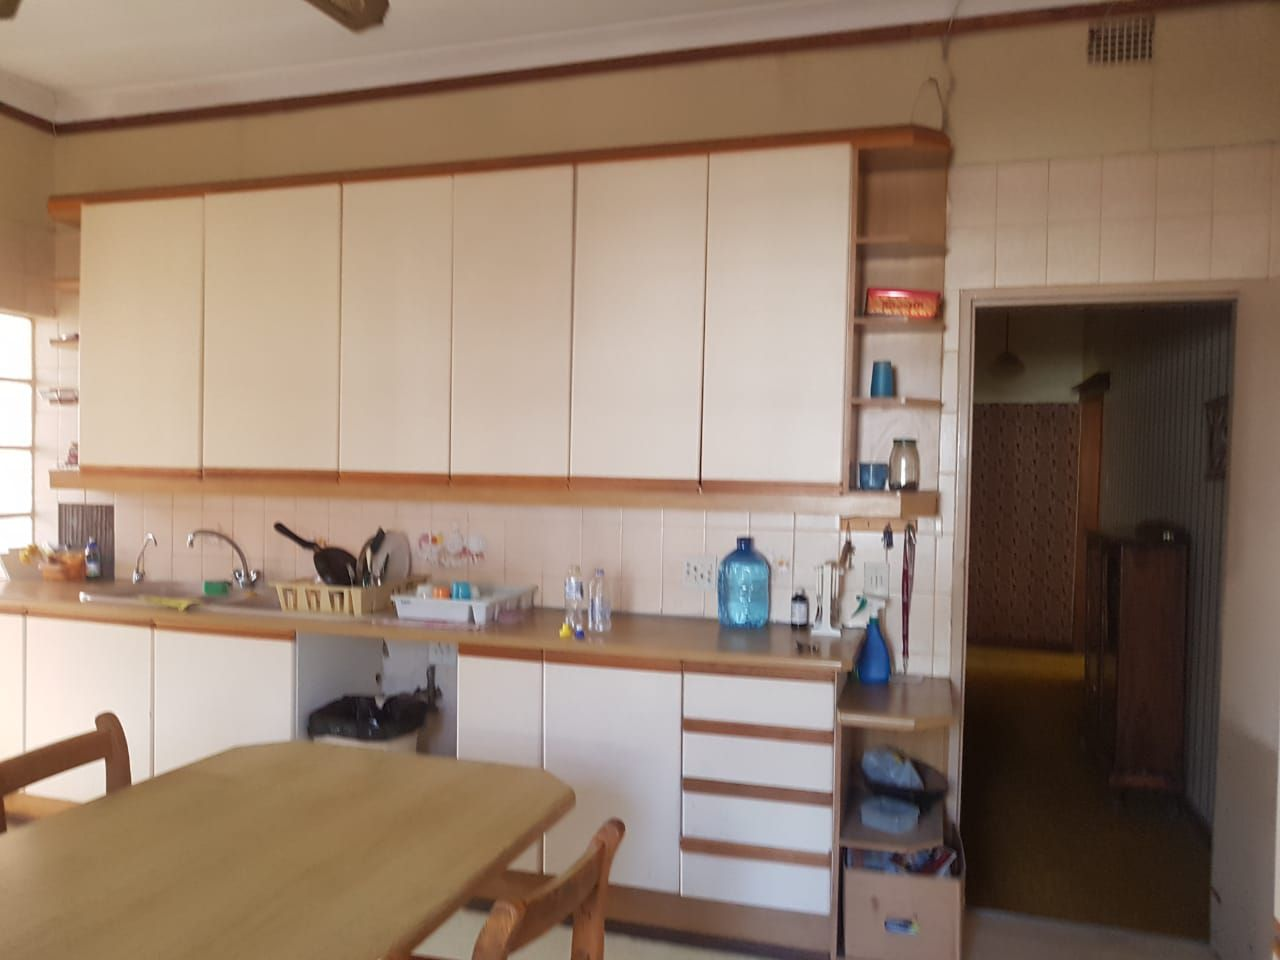 House in Bult - WhatsApp Image 2019-06-18 at 12.15.17.jpeg